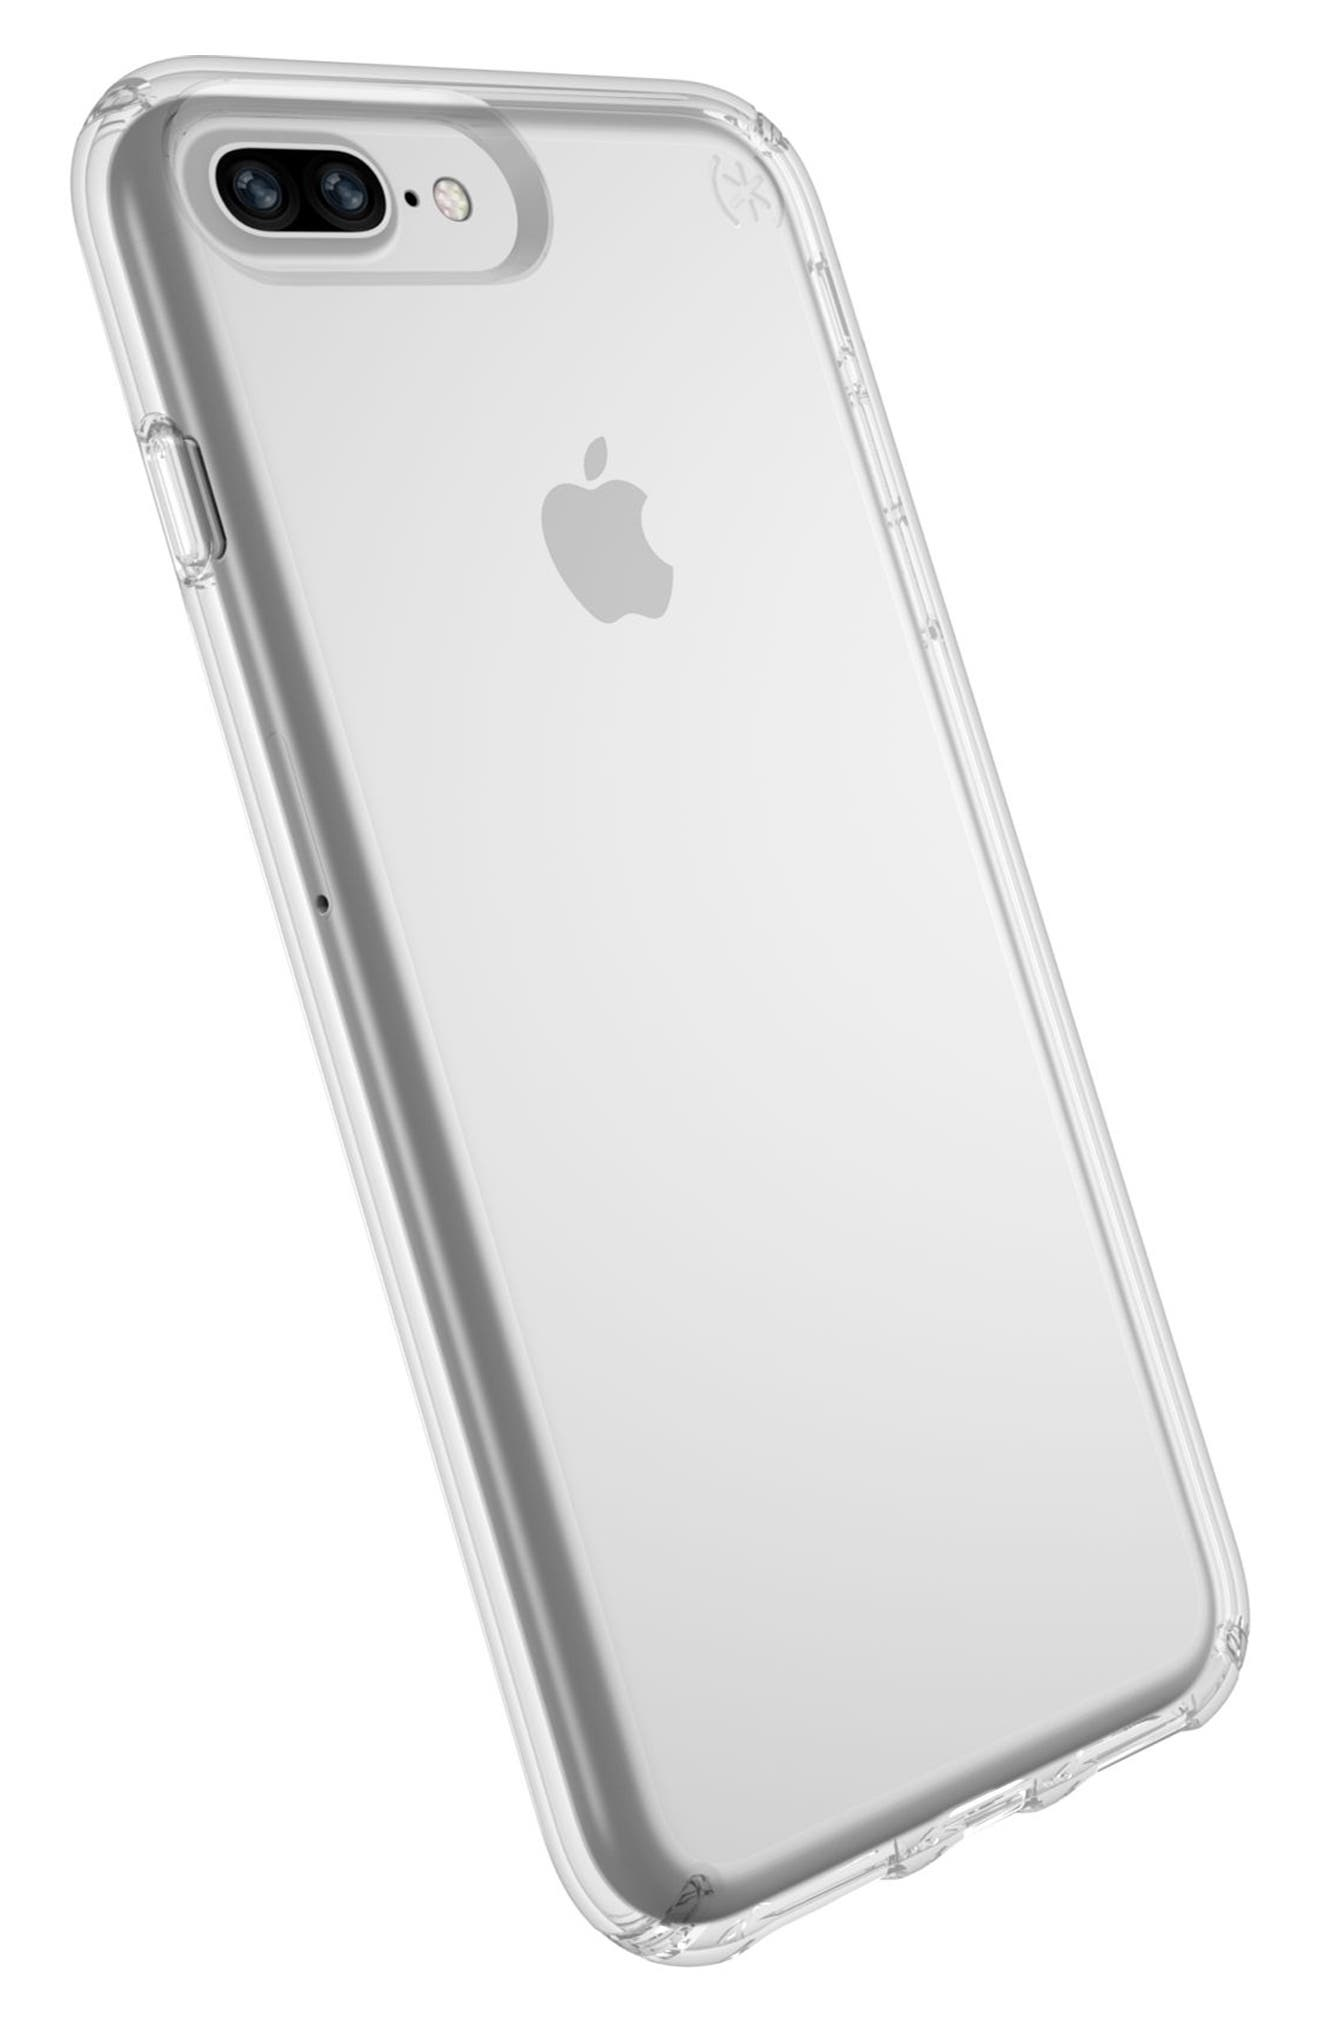 iPhone 6/6s/7/8 Plus Case,                             Alternate thumbnail 8, color,                             CLEAR/ CLEAR